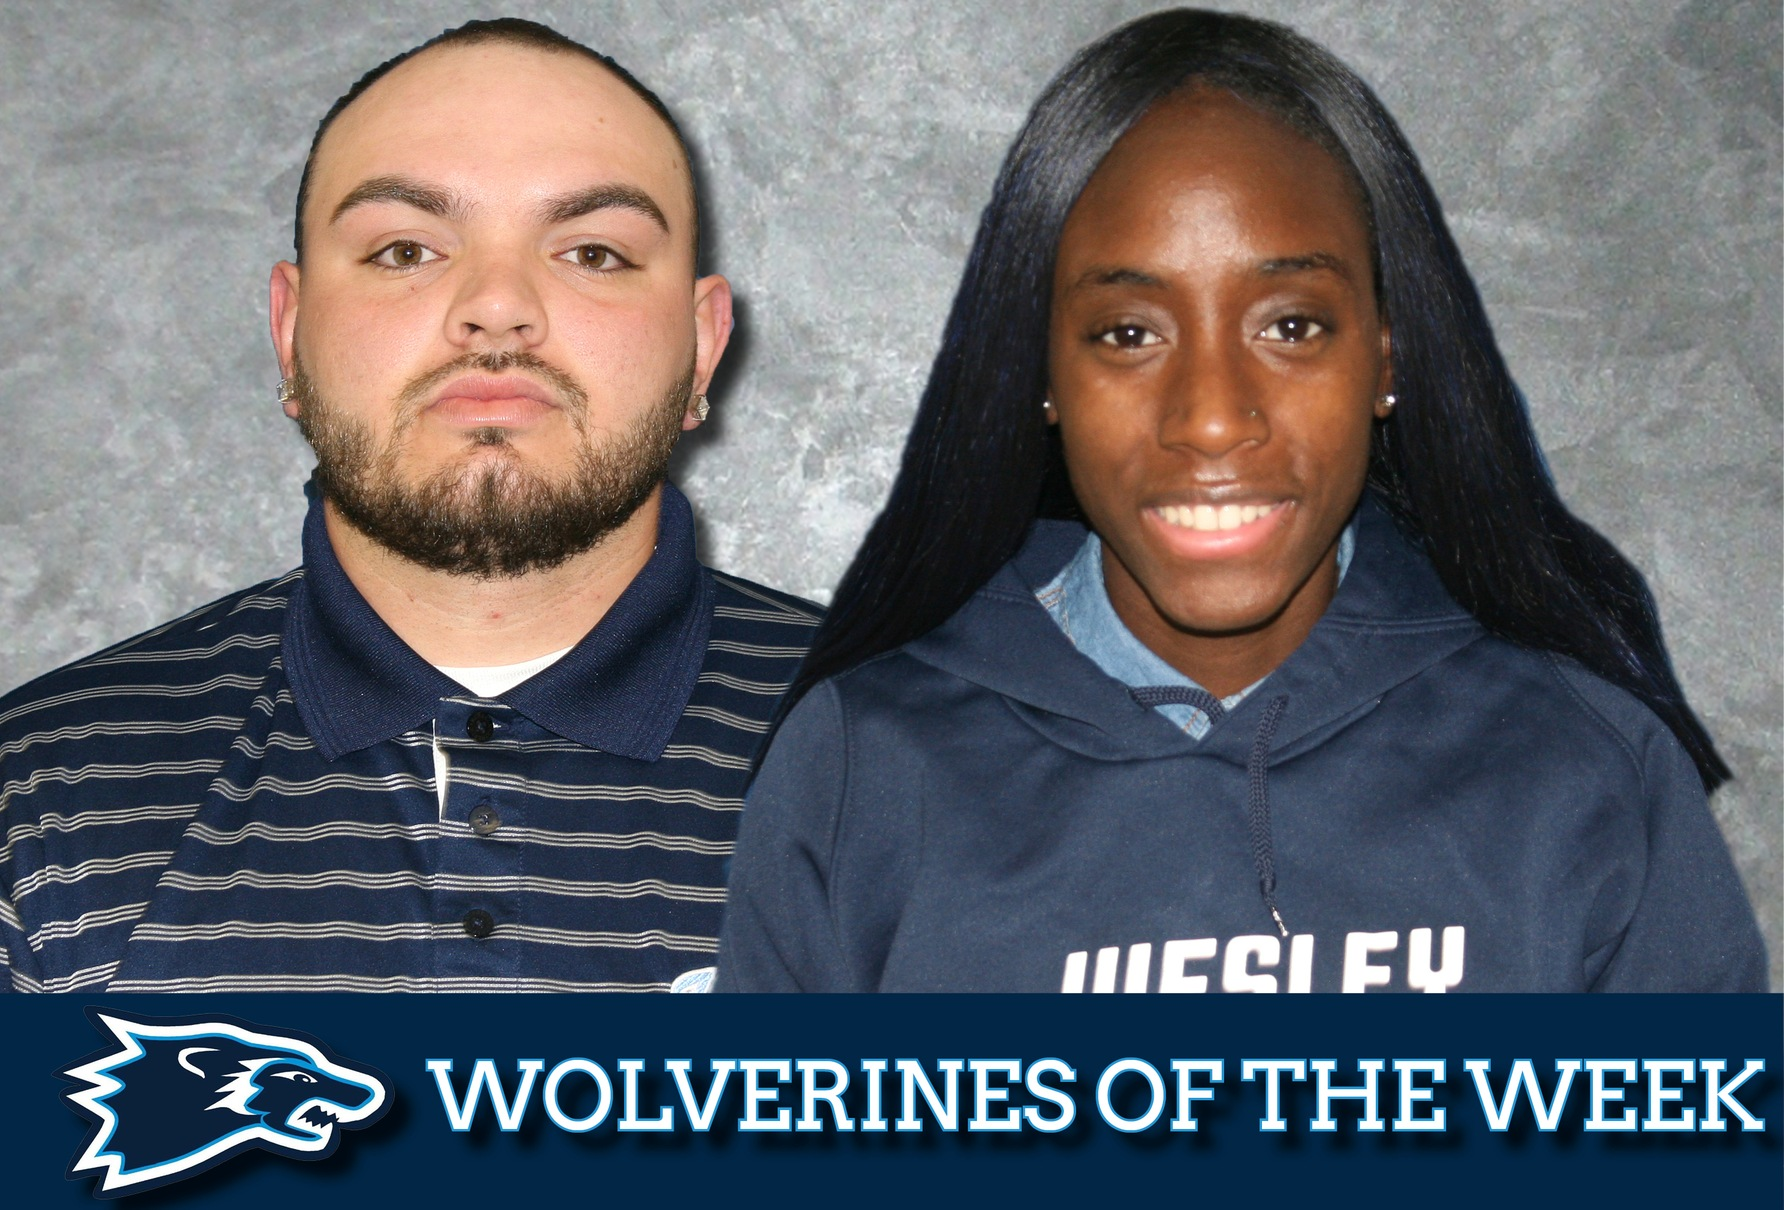 Seibert, Streeter named Wolverines of the Week